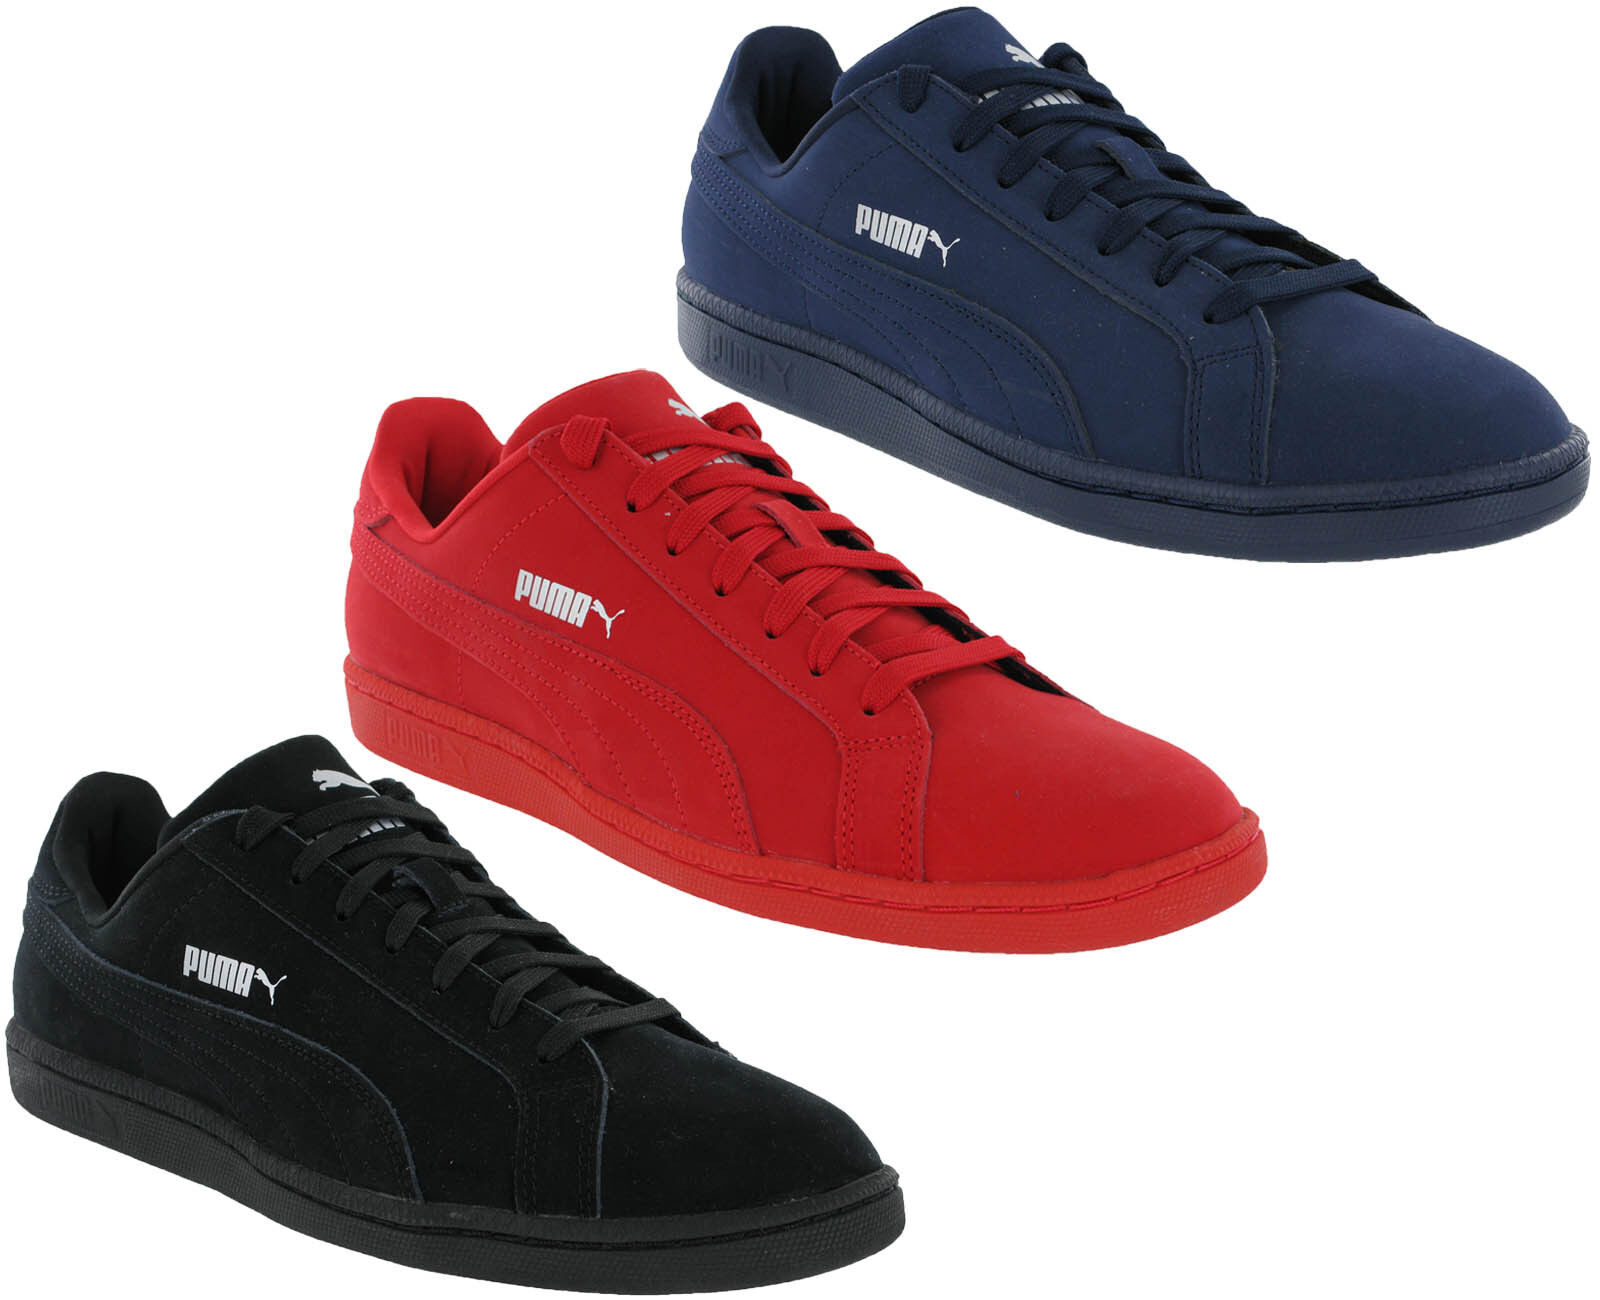 Puma Classic Trainers Smash Buck Mono Leather Lace Black, Red, Navy Mens